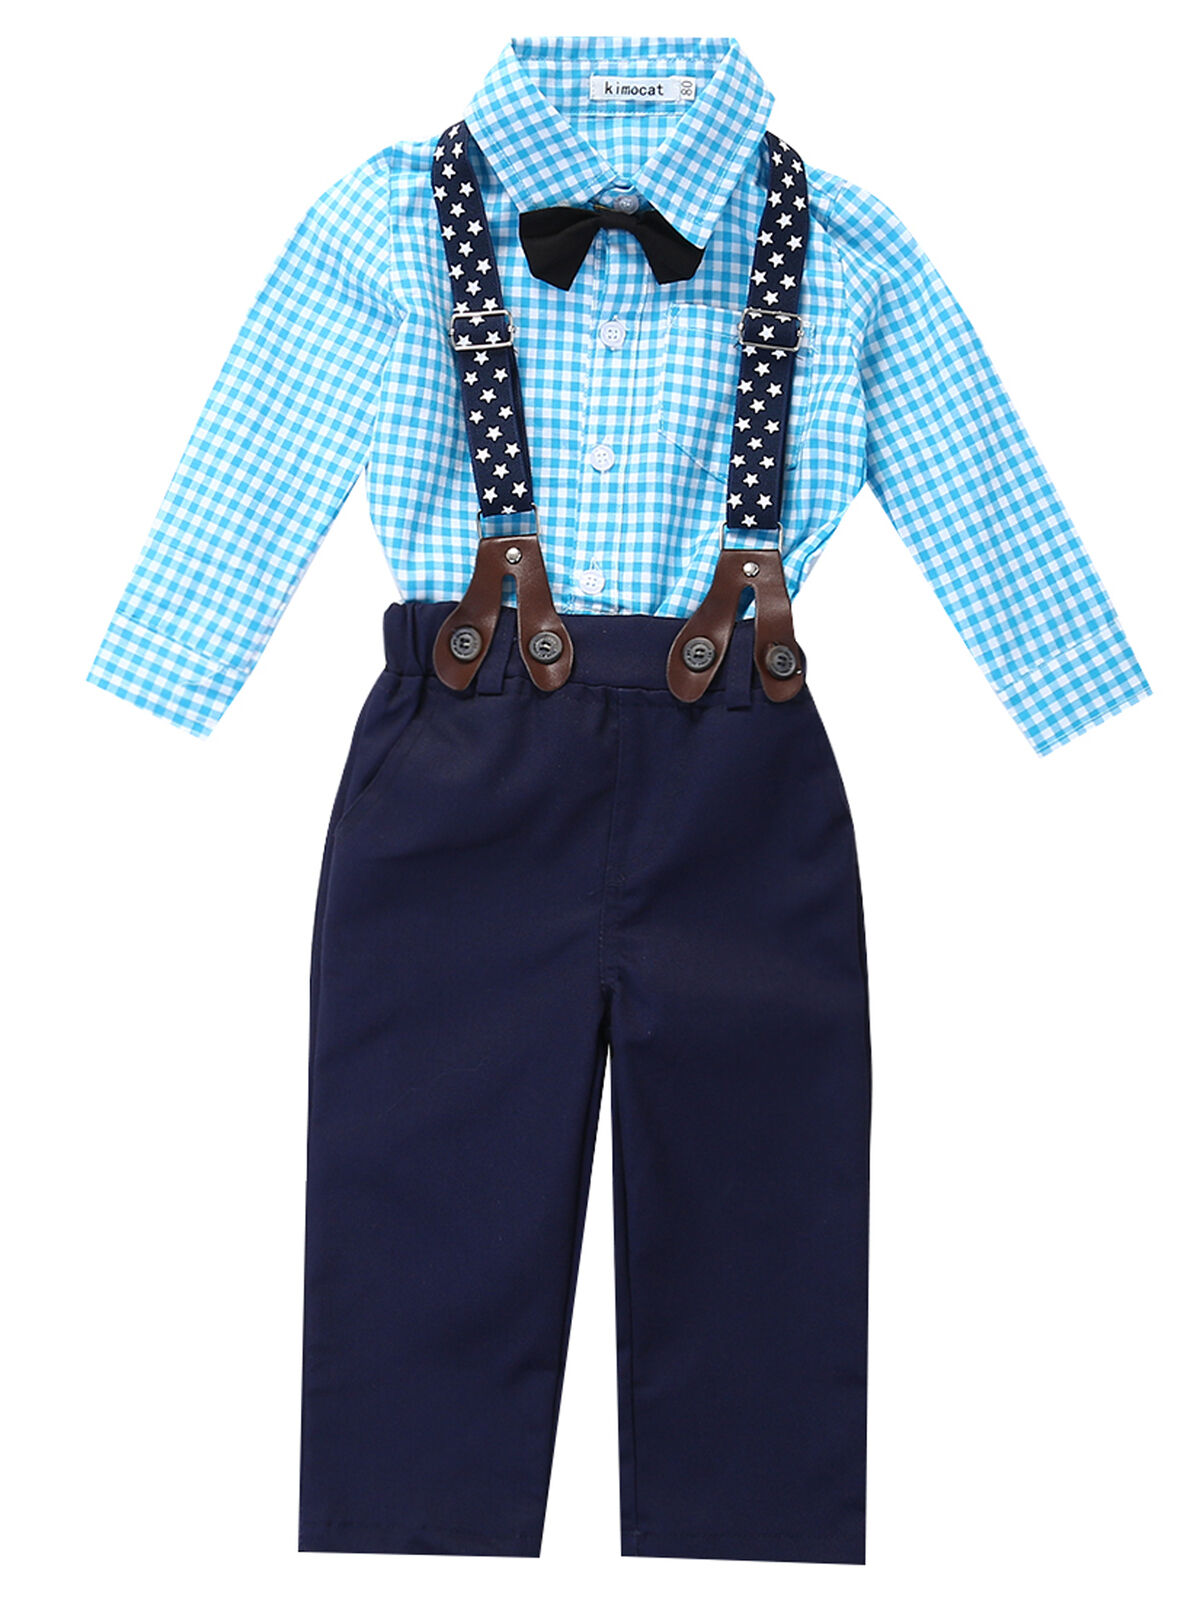 0-3 Years,SO-buts Newborn Kid Toddler Baby Boys Plaid Print Hooded Tops Sweatshirt Pants Trousers Autumn Winter Tracksuit Outifts Set